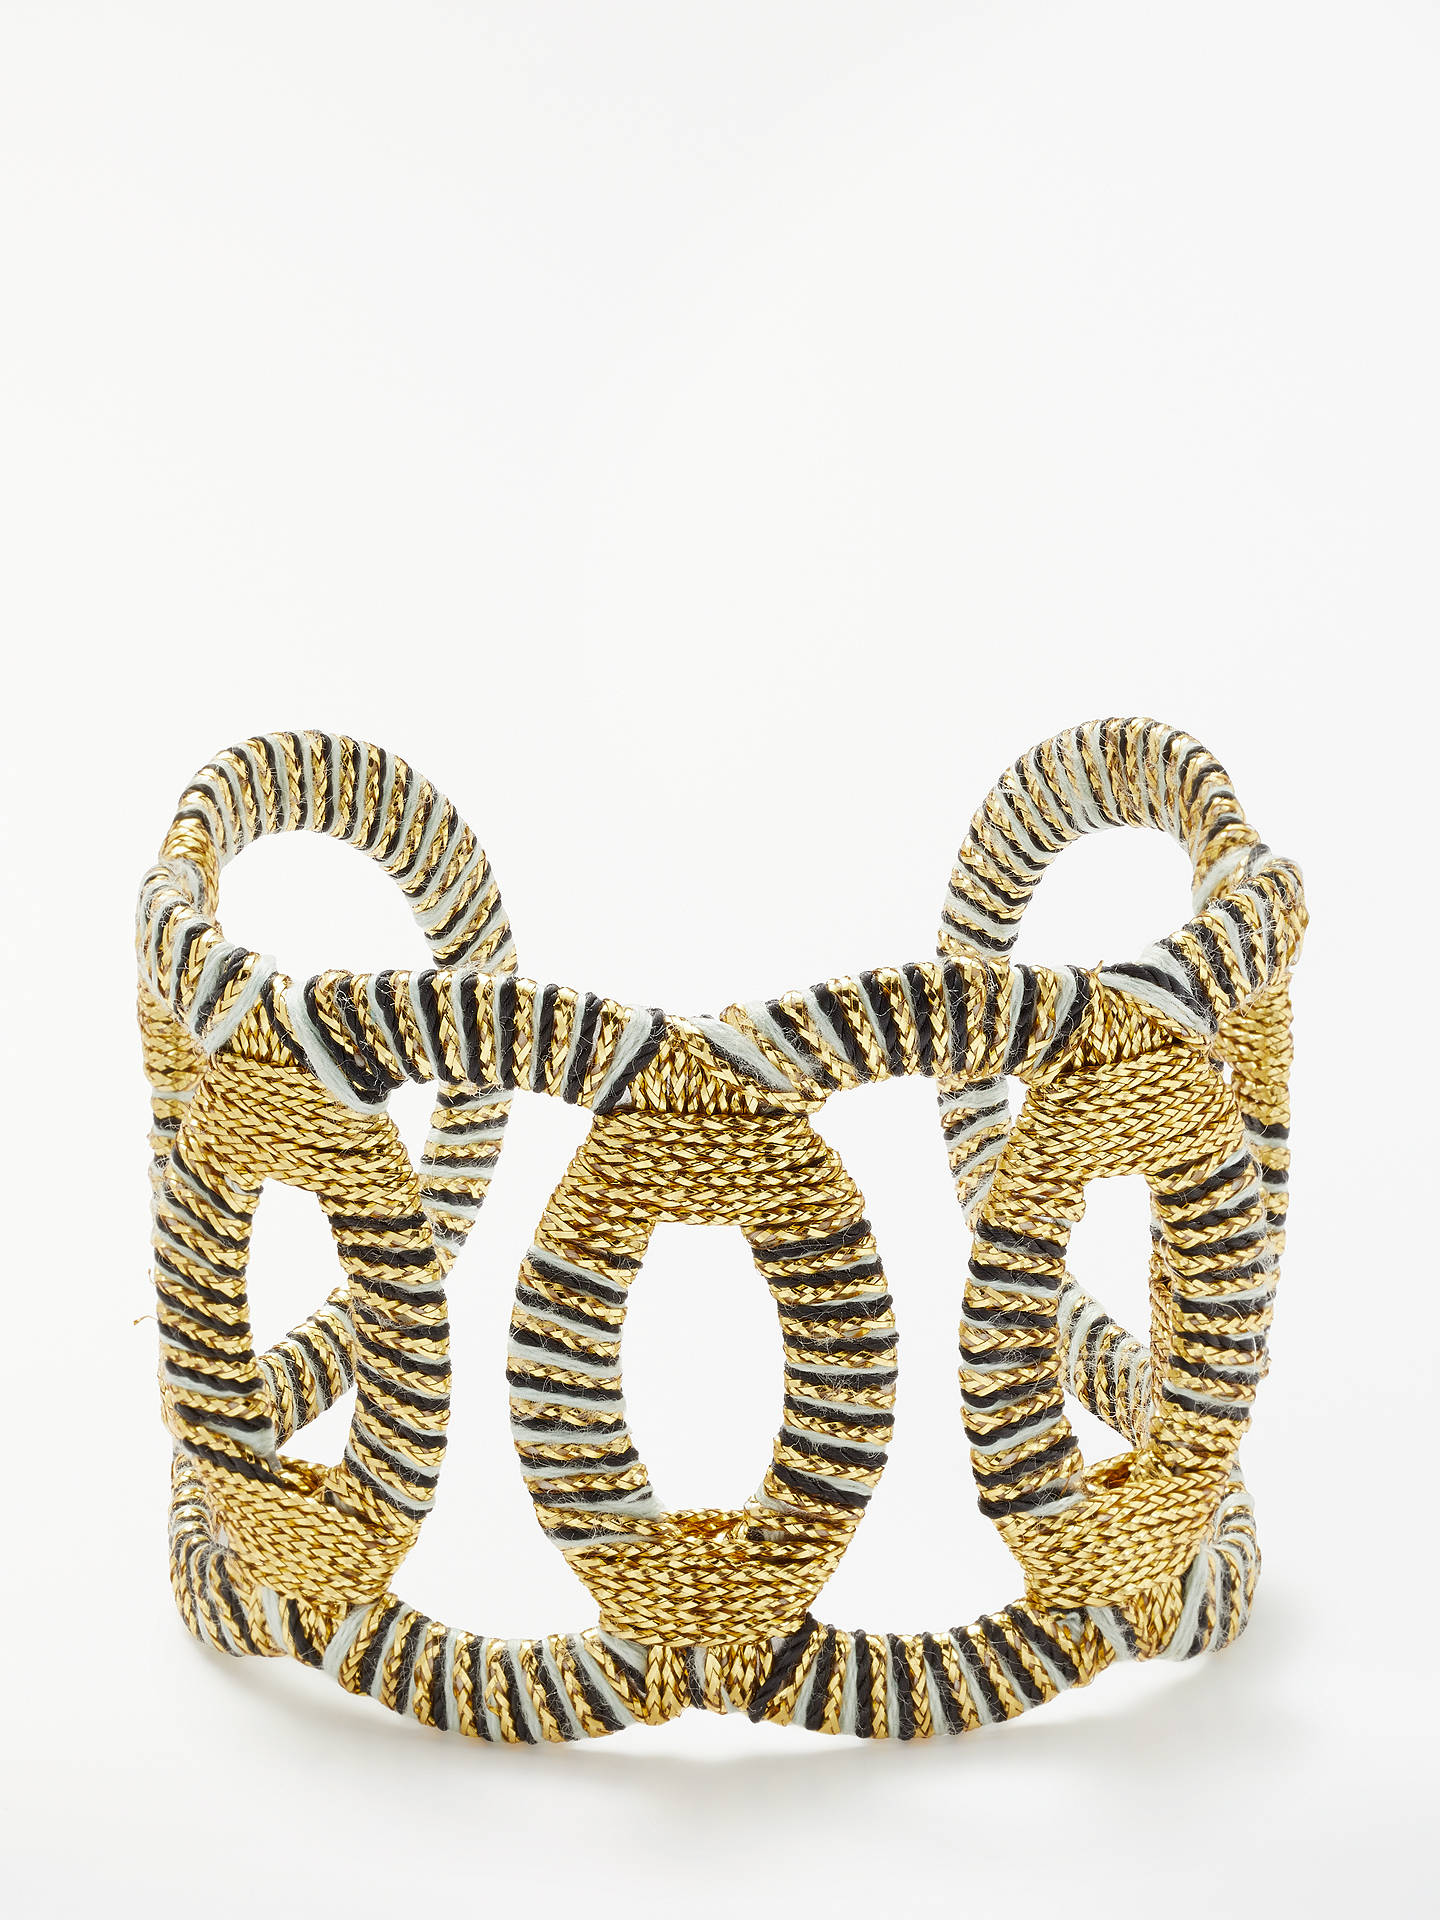 Buyboks&baum Osiris Crochet Cuff, Gold/Silver Online at johnlewis.com